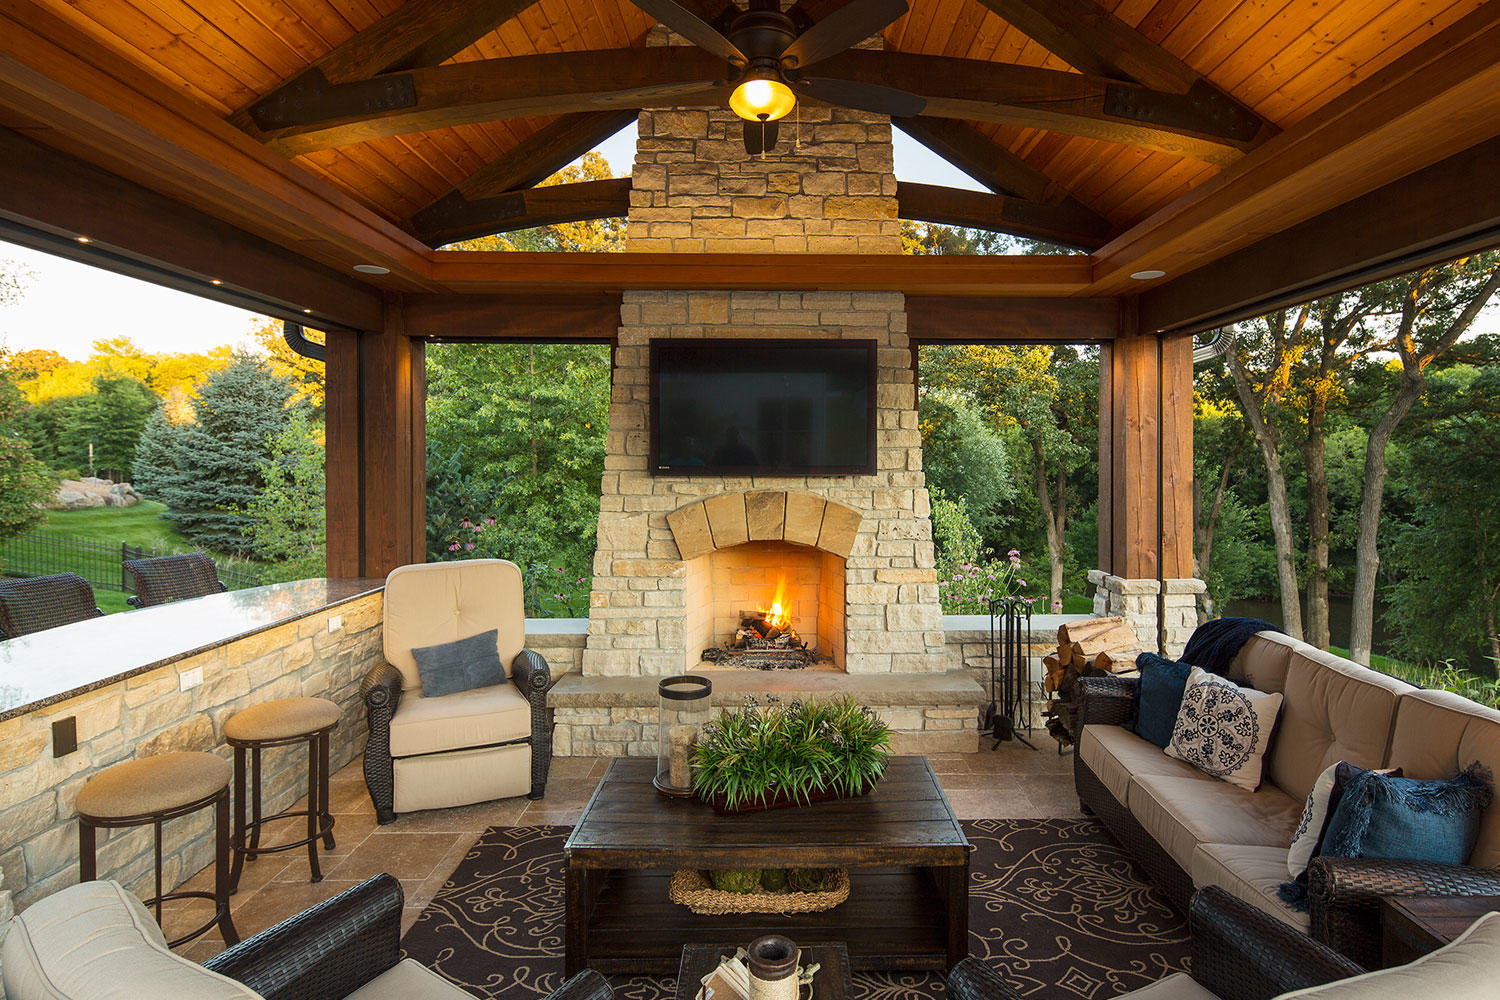 Outdoor Living Rooms Minneapolis & St. Paul | Southview Design on Garden Living Space id=24892